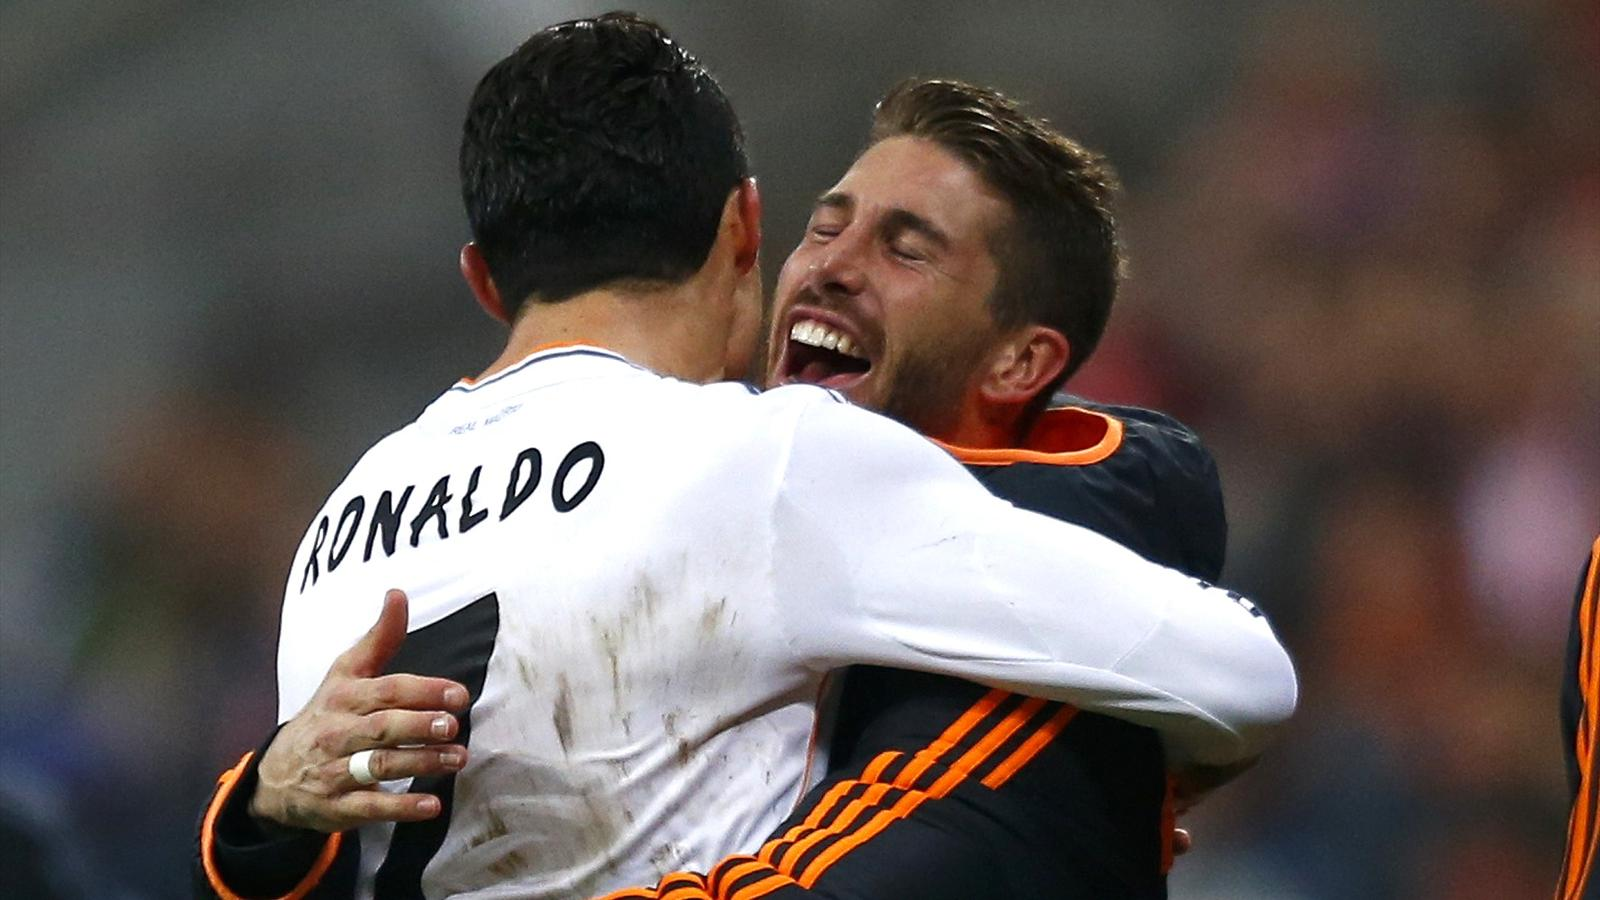 Real Madrid's Cristiano Ronaldo celebrates the fourth goal against Bayern Munich with Sergio Ramos (R) during their Champions League semi-final second leg soccer match in Munich, April 29, 2014. REUTERS/Michael Dalder (GERMANY - Tags: SPORT SOCCER TPX IMA